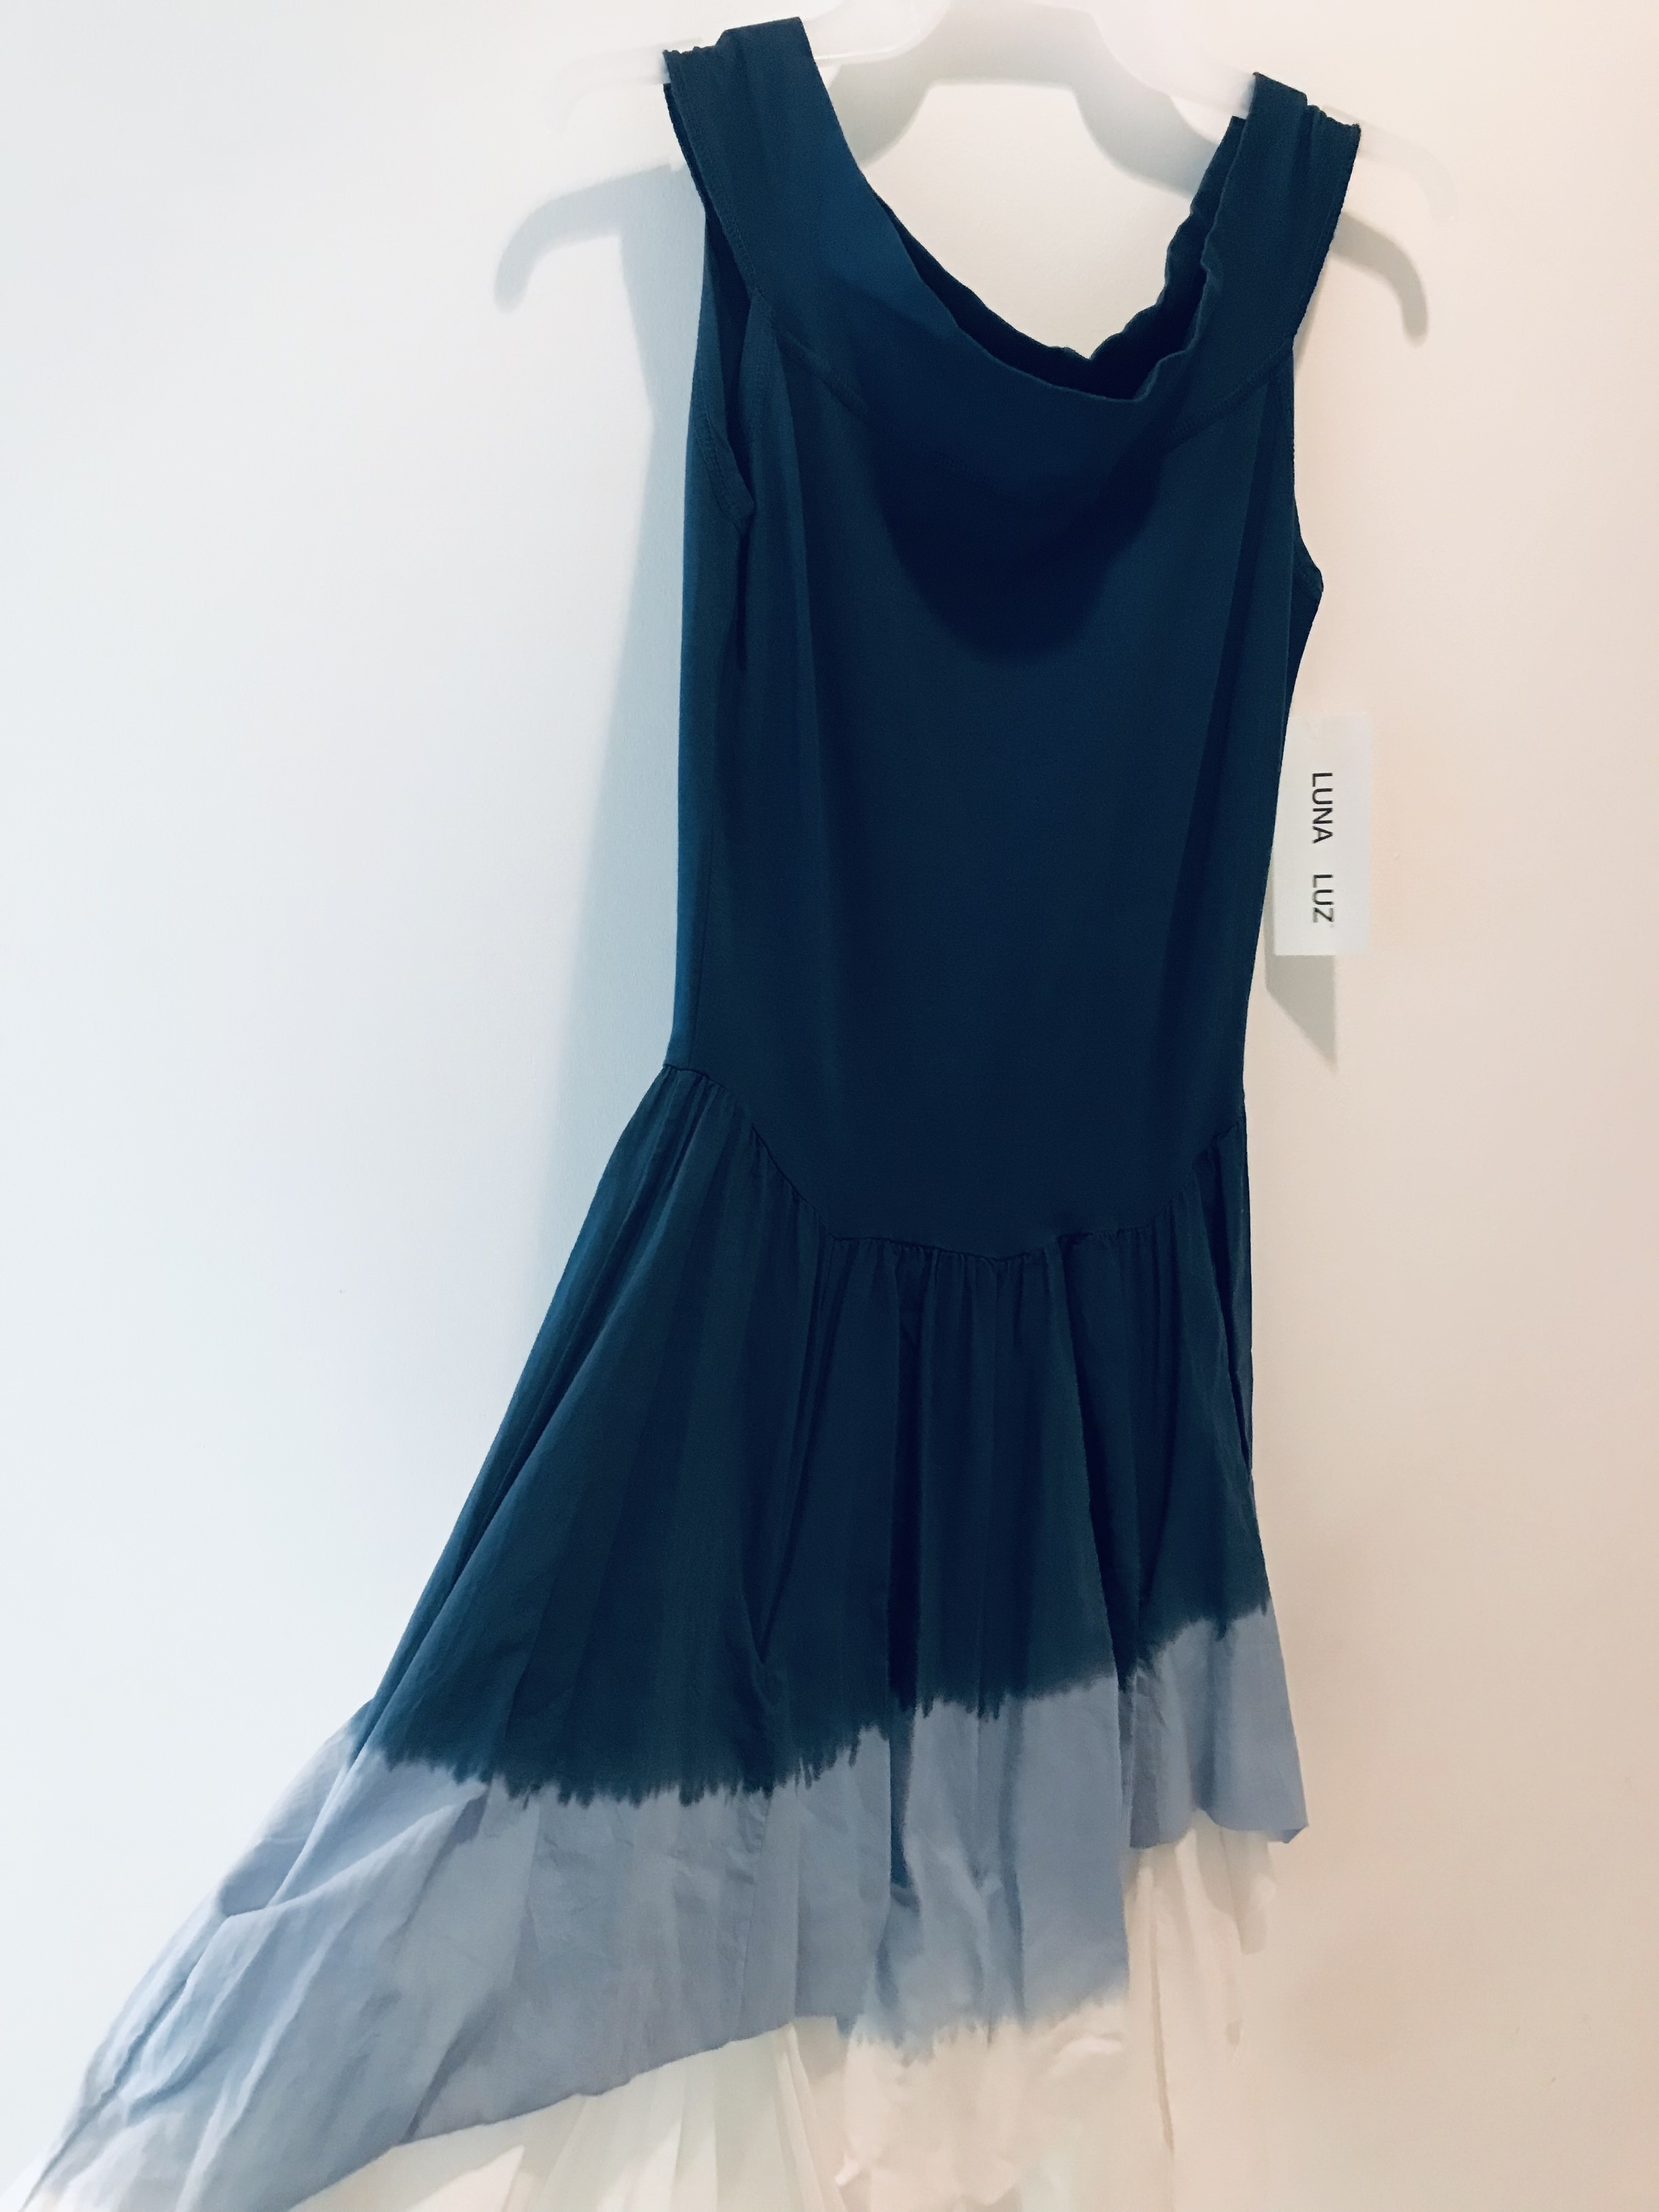 Luna Luz: Sleeveless Tied and Dyed Ombre Dress (Ships Immed in Navy Ombre, 1 Left!)